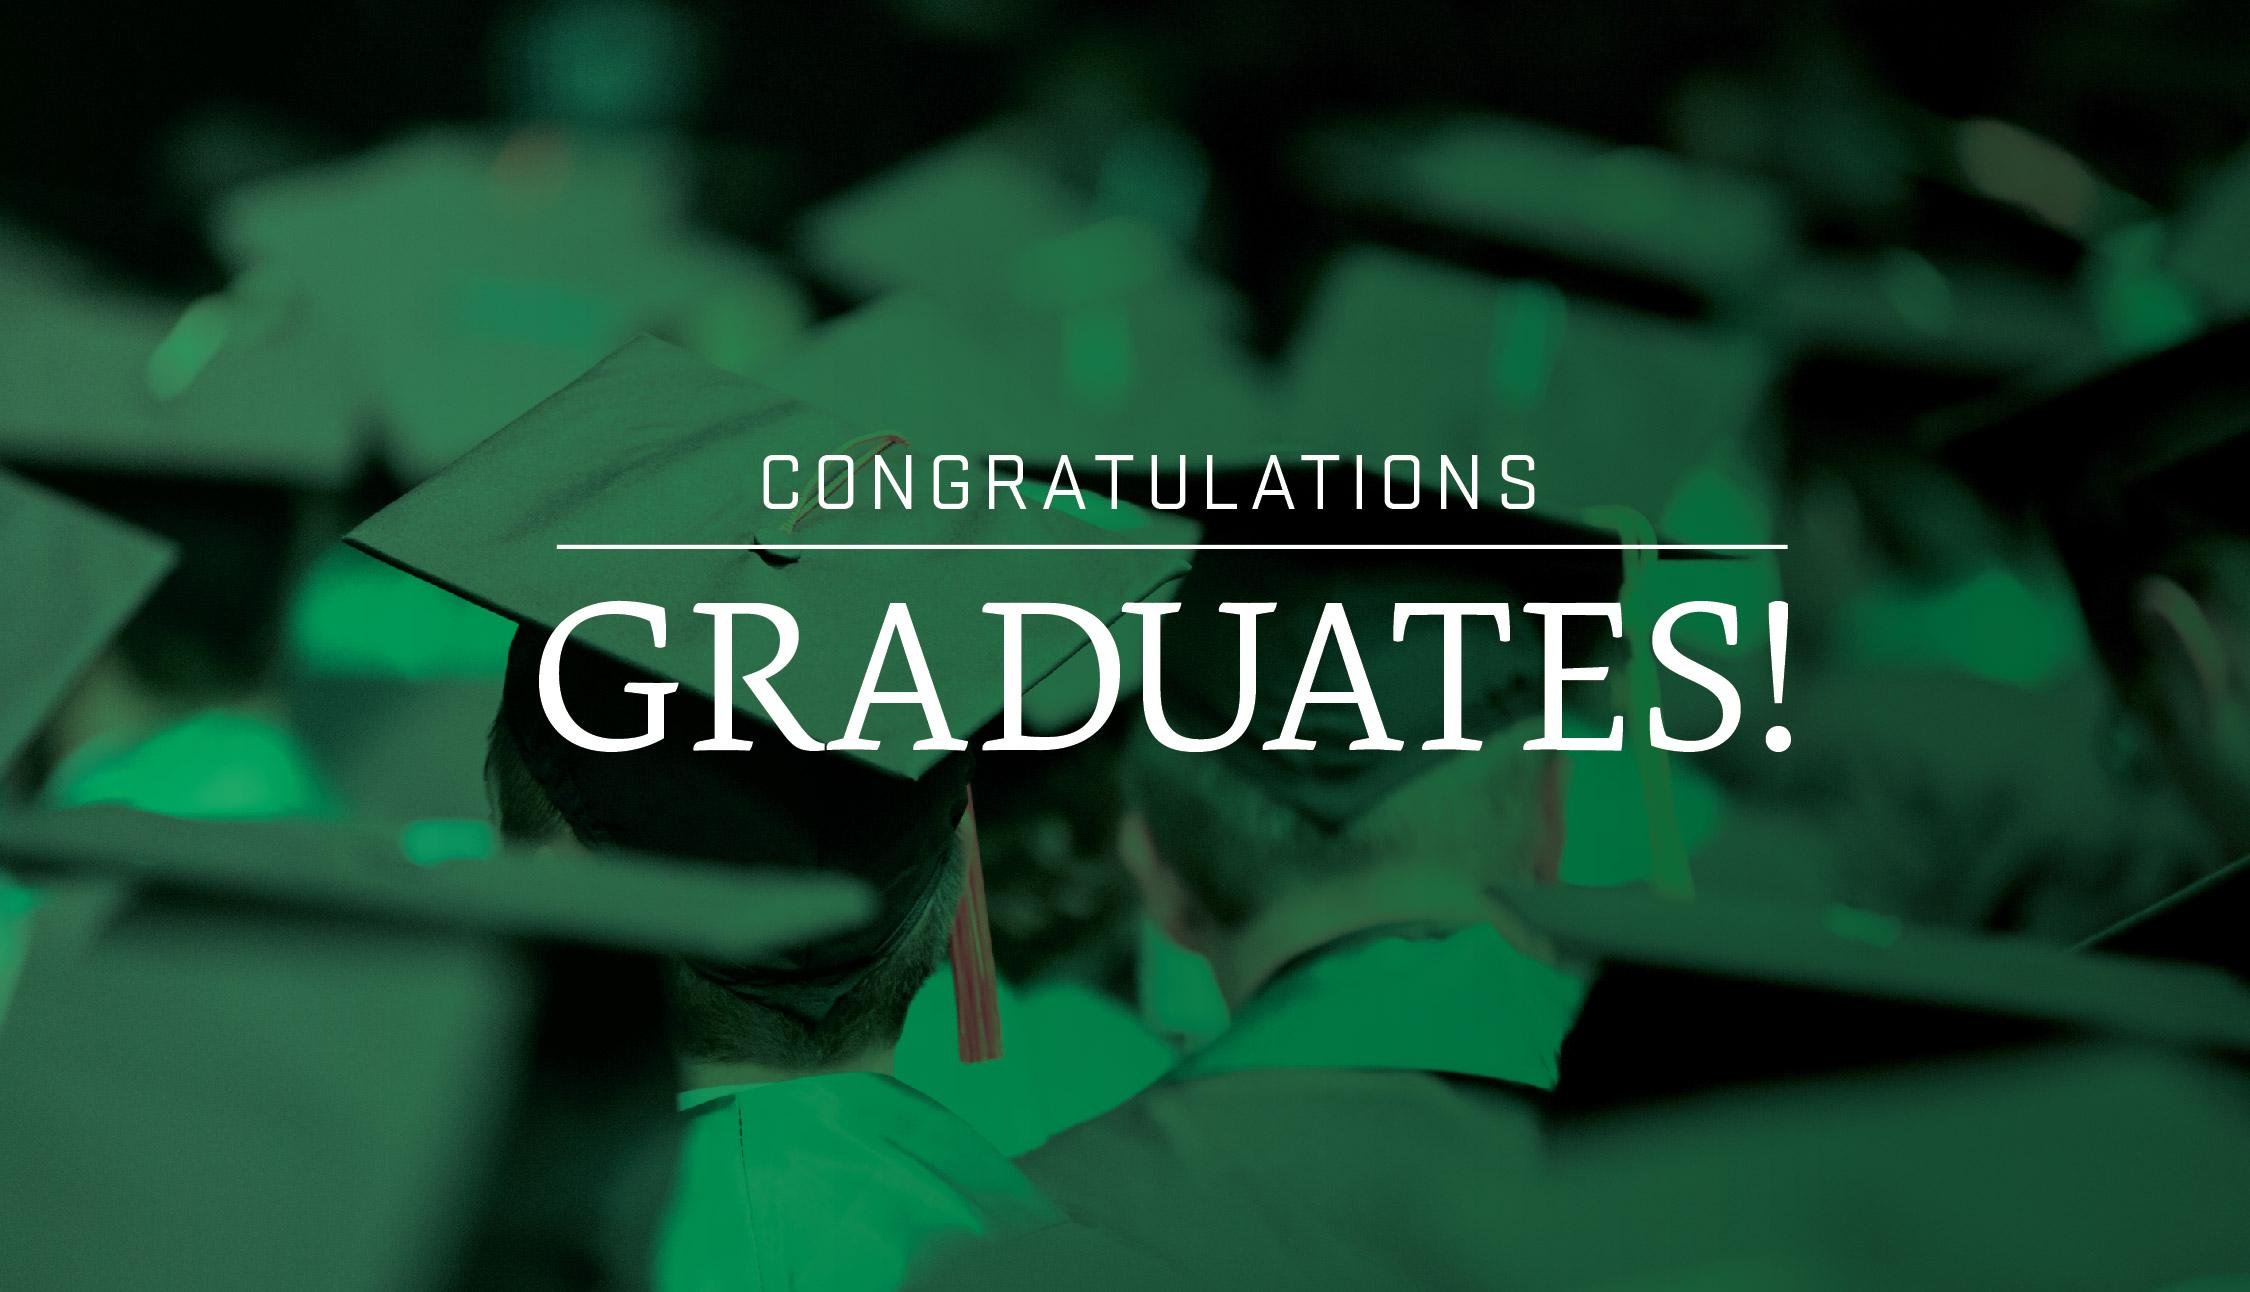 Utah Valley University's 74th commencement celebrated 5,143 students who earned 5,341 degrees. Congratulations to our graduates!